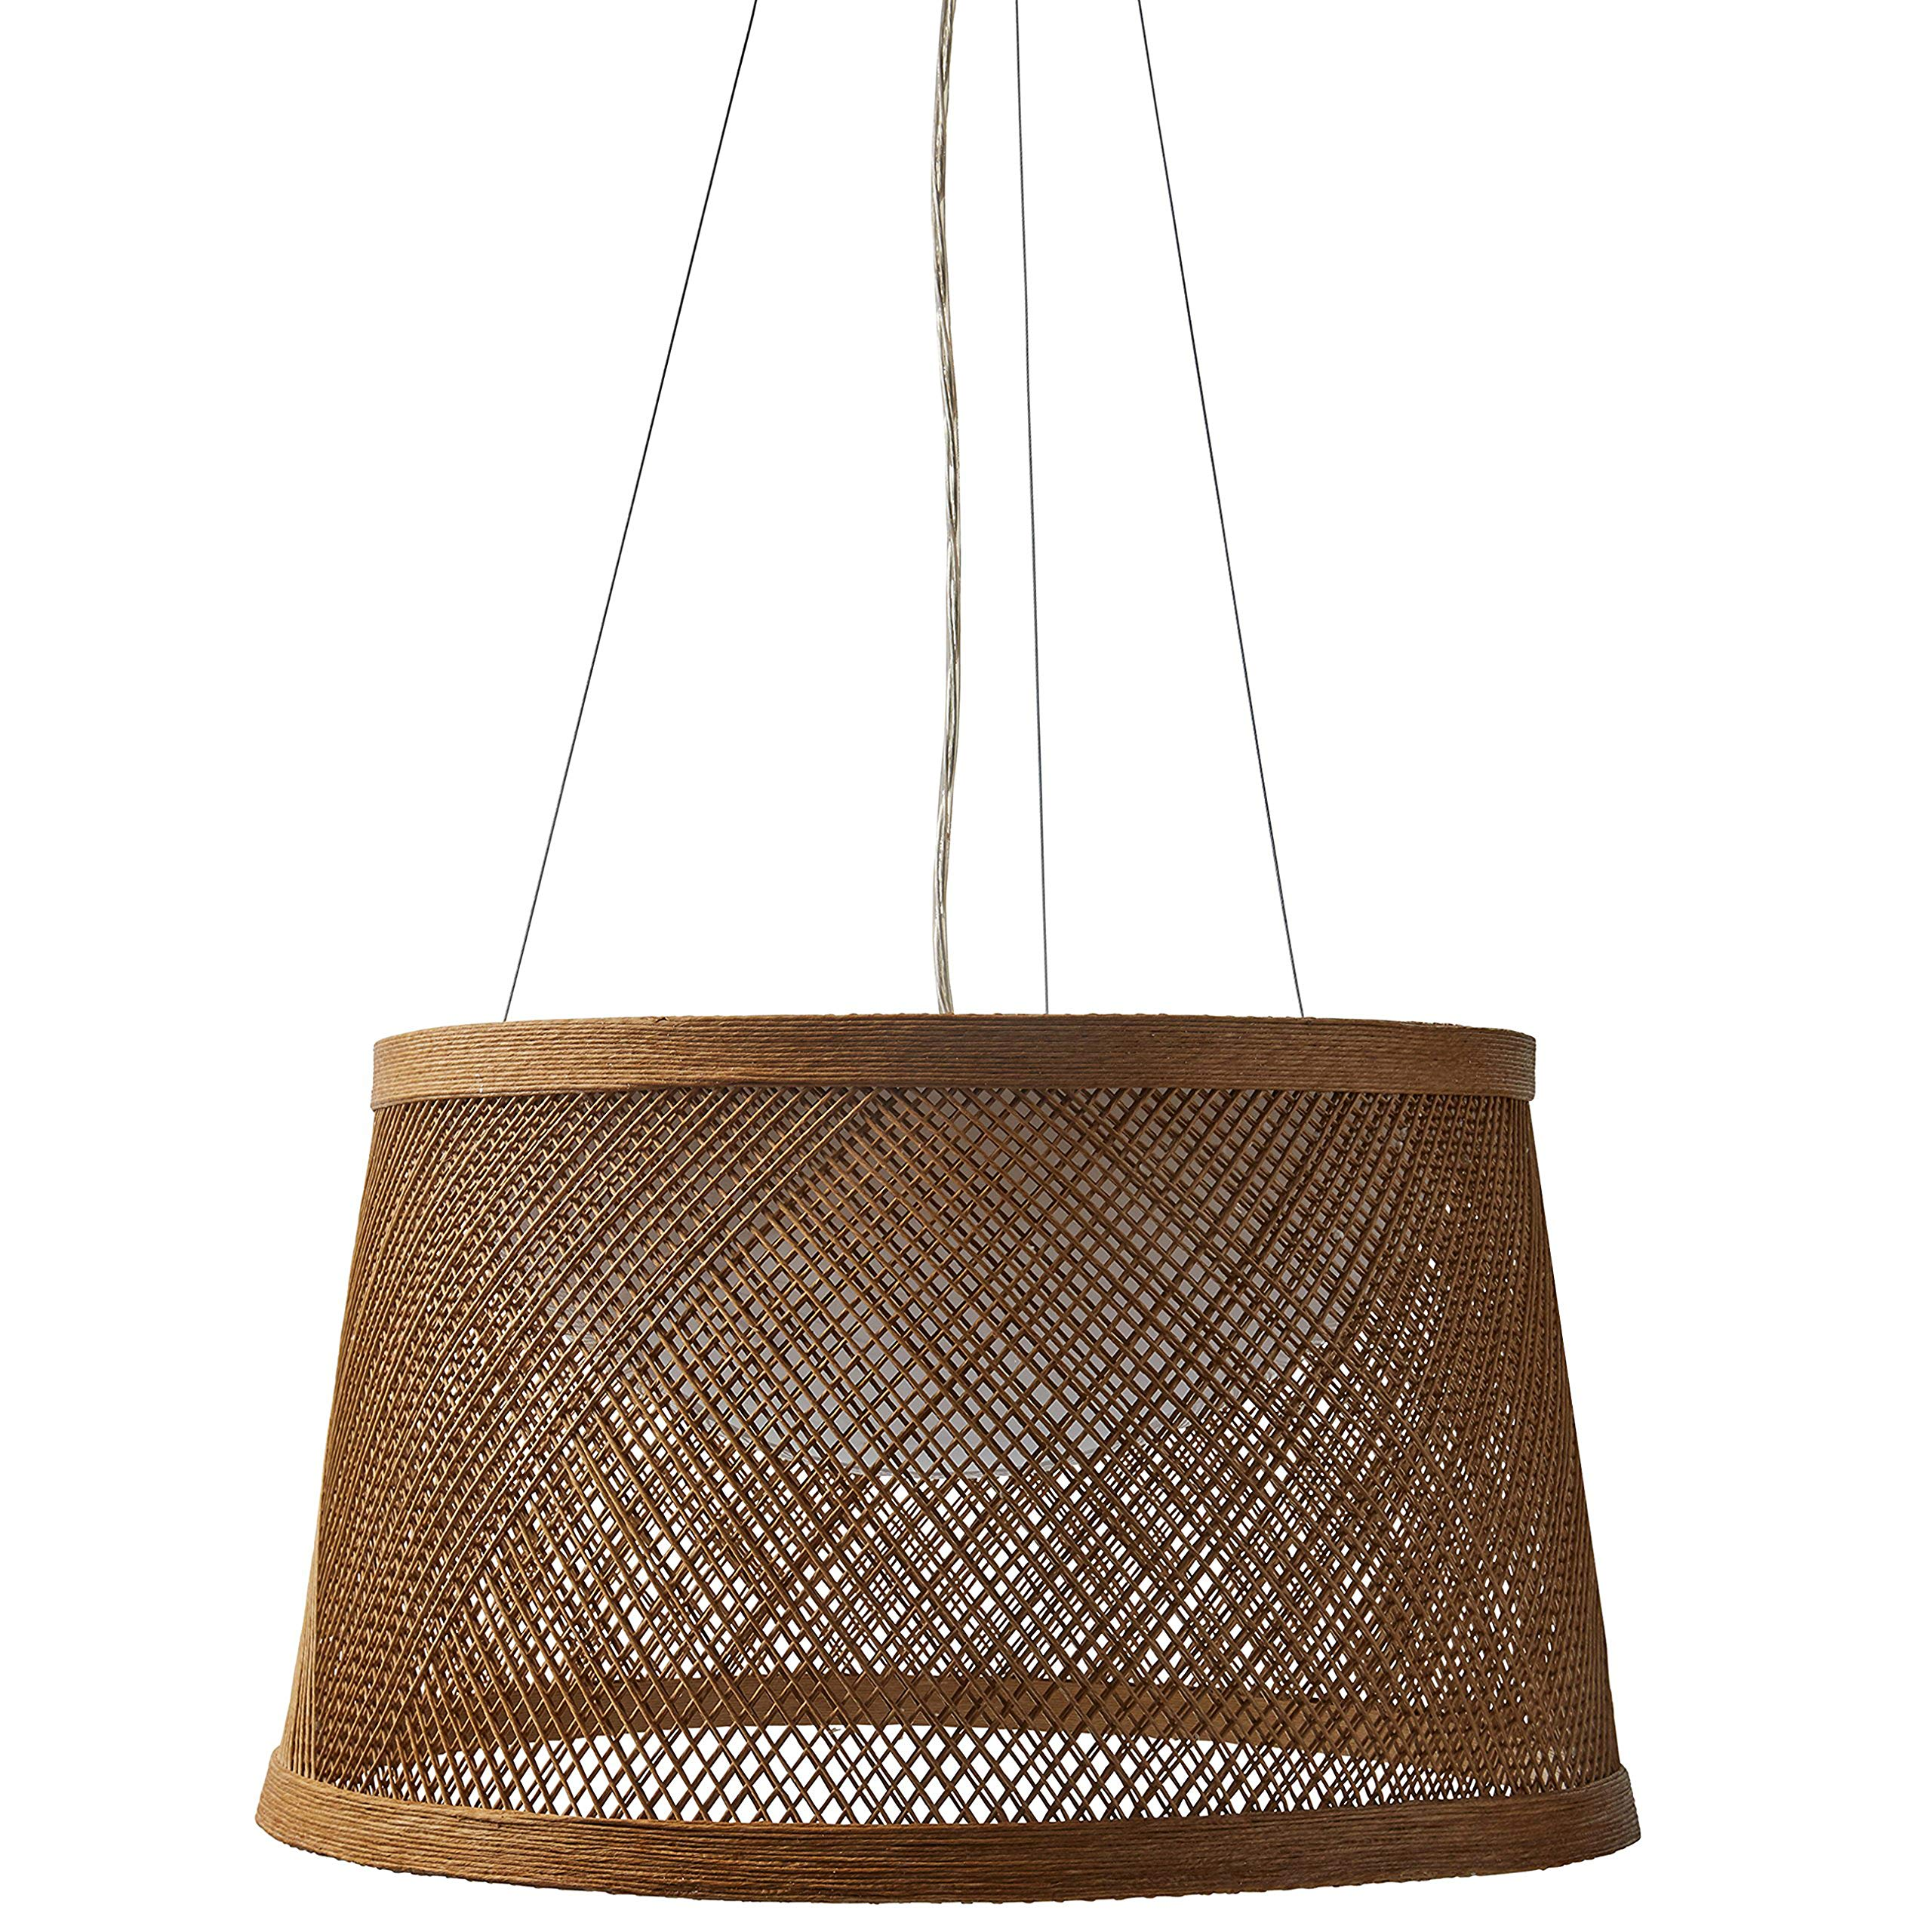 Stone & Beam Modern Coastal Raffia Ceiling Hanging Pendant Chandelier Fixture With Built-In LED Light - 20.3 x 11 Inch Shade by Stone & Beam